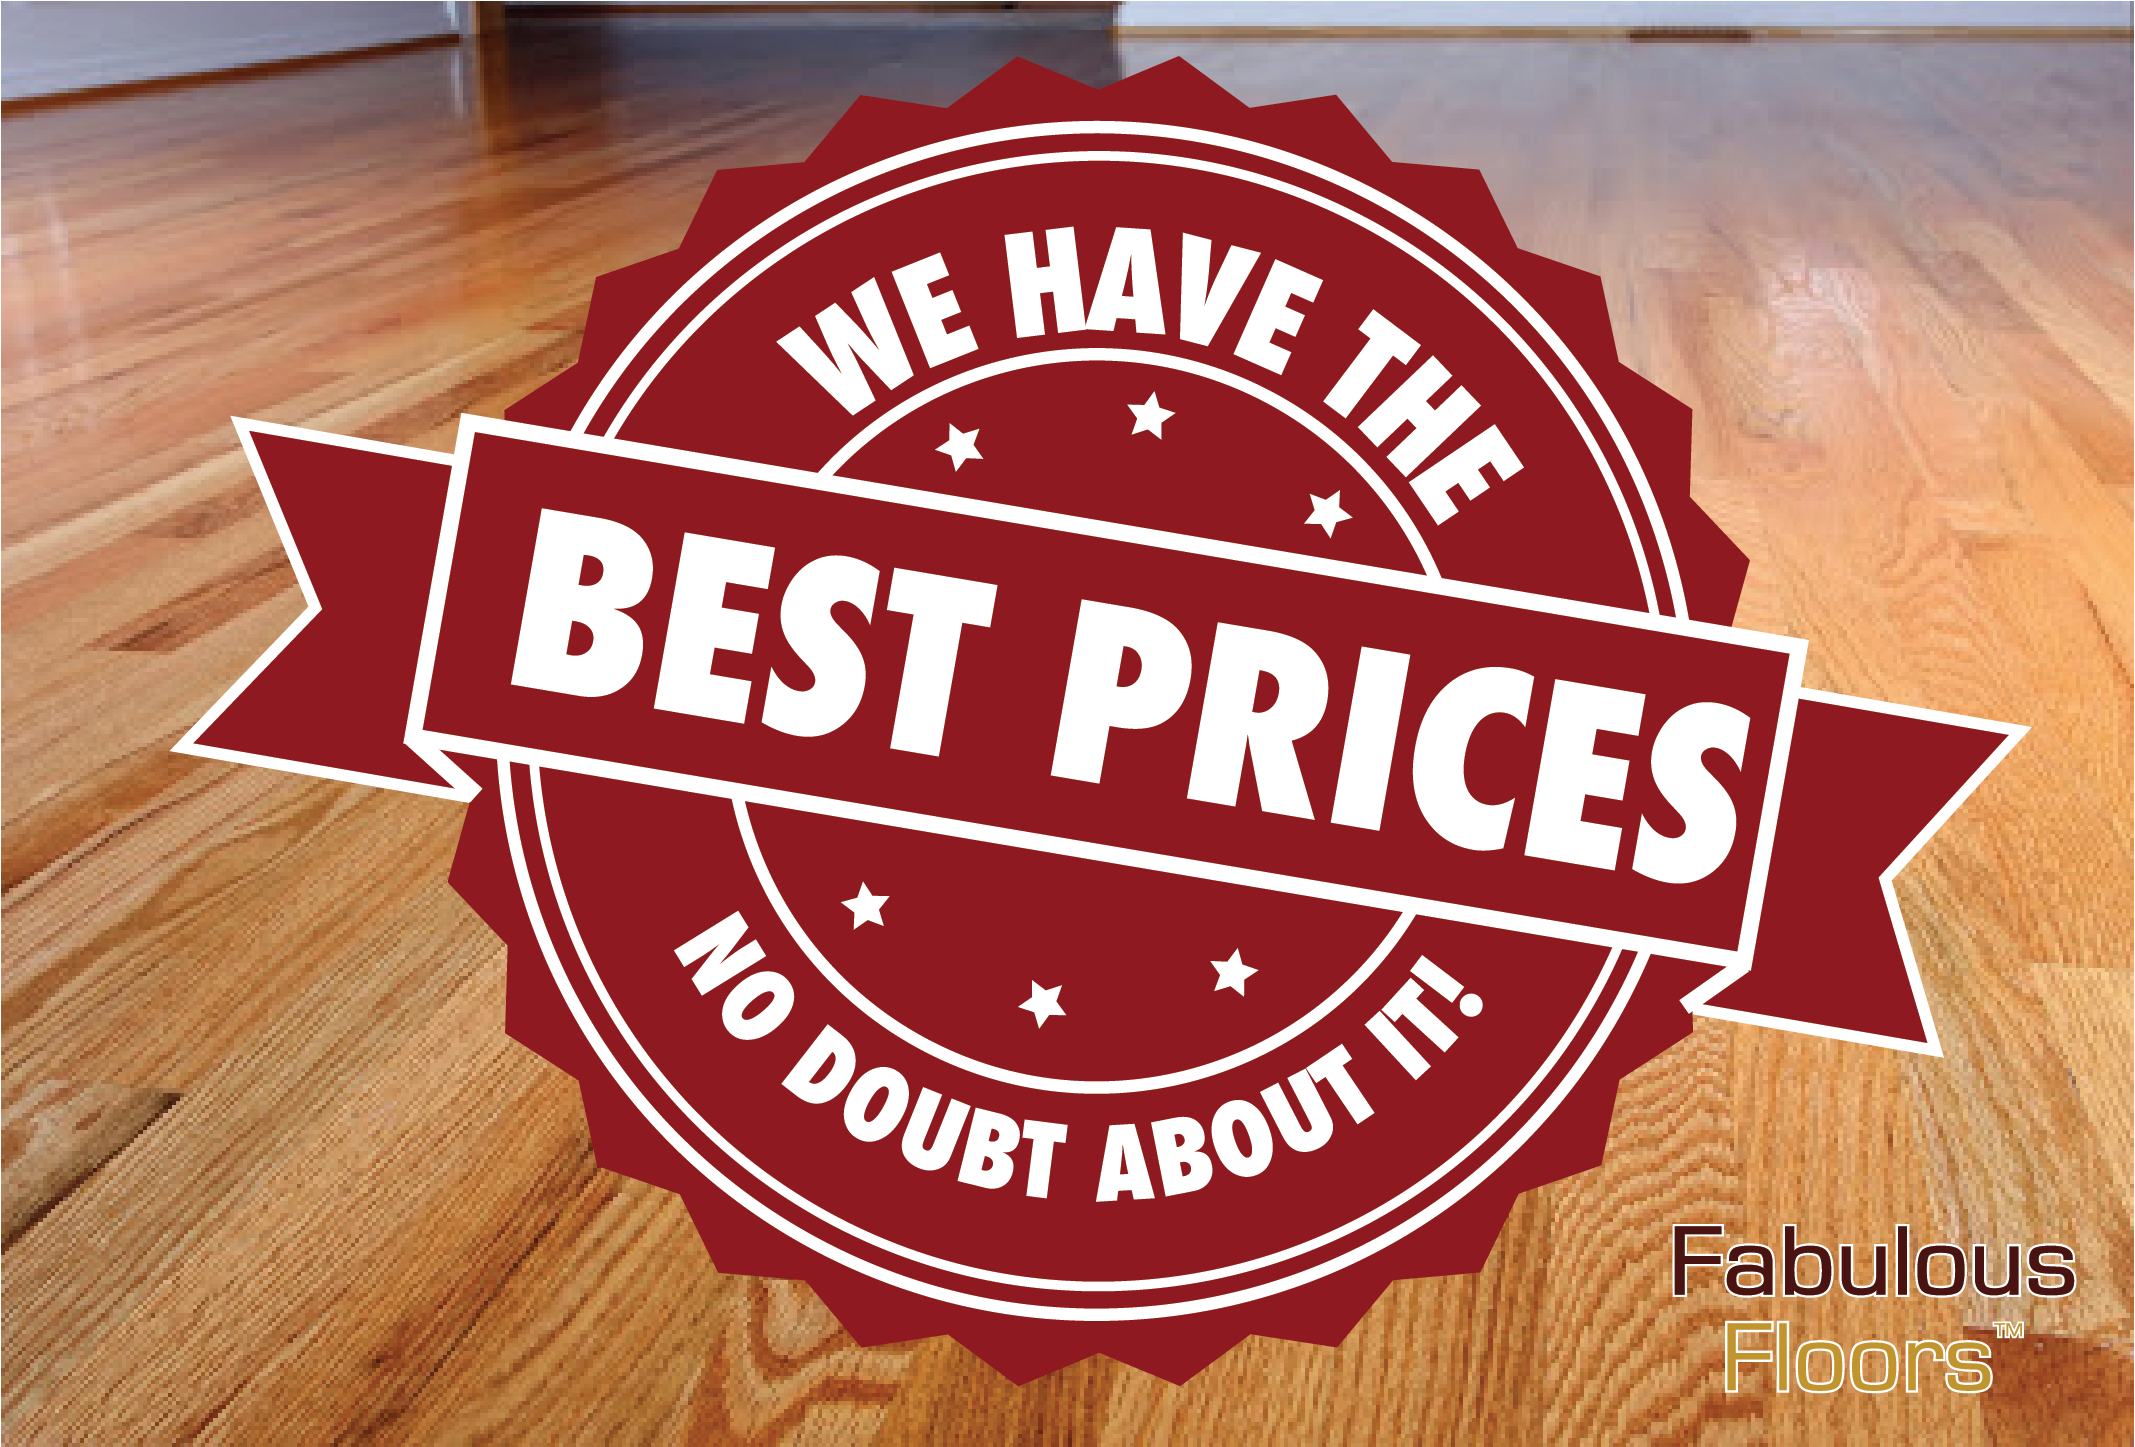 We have the best prices in town